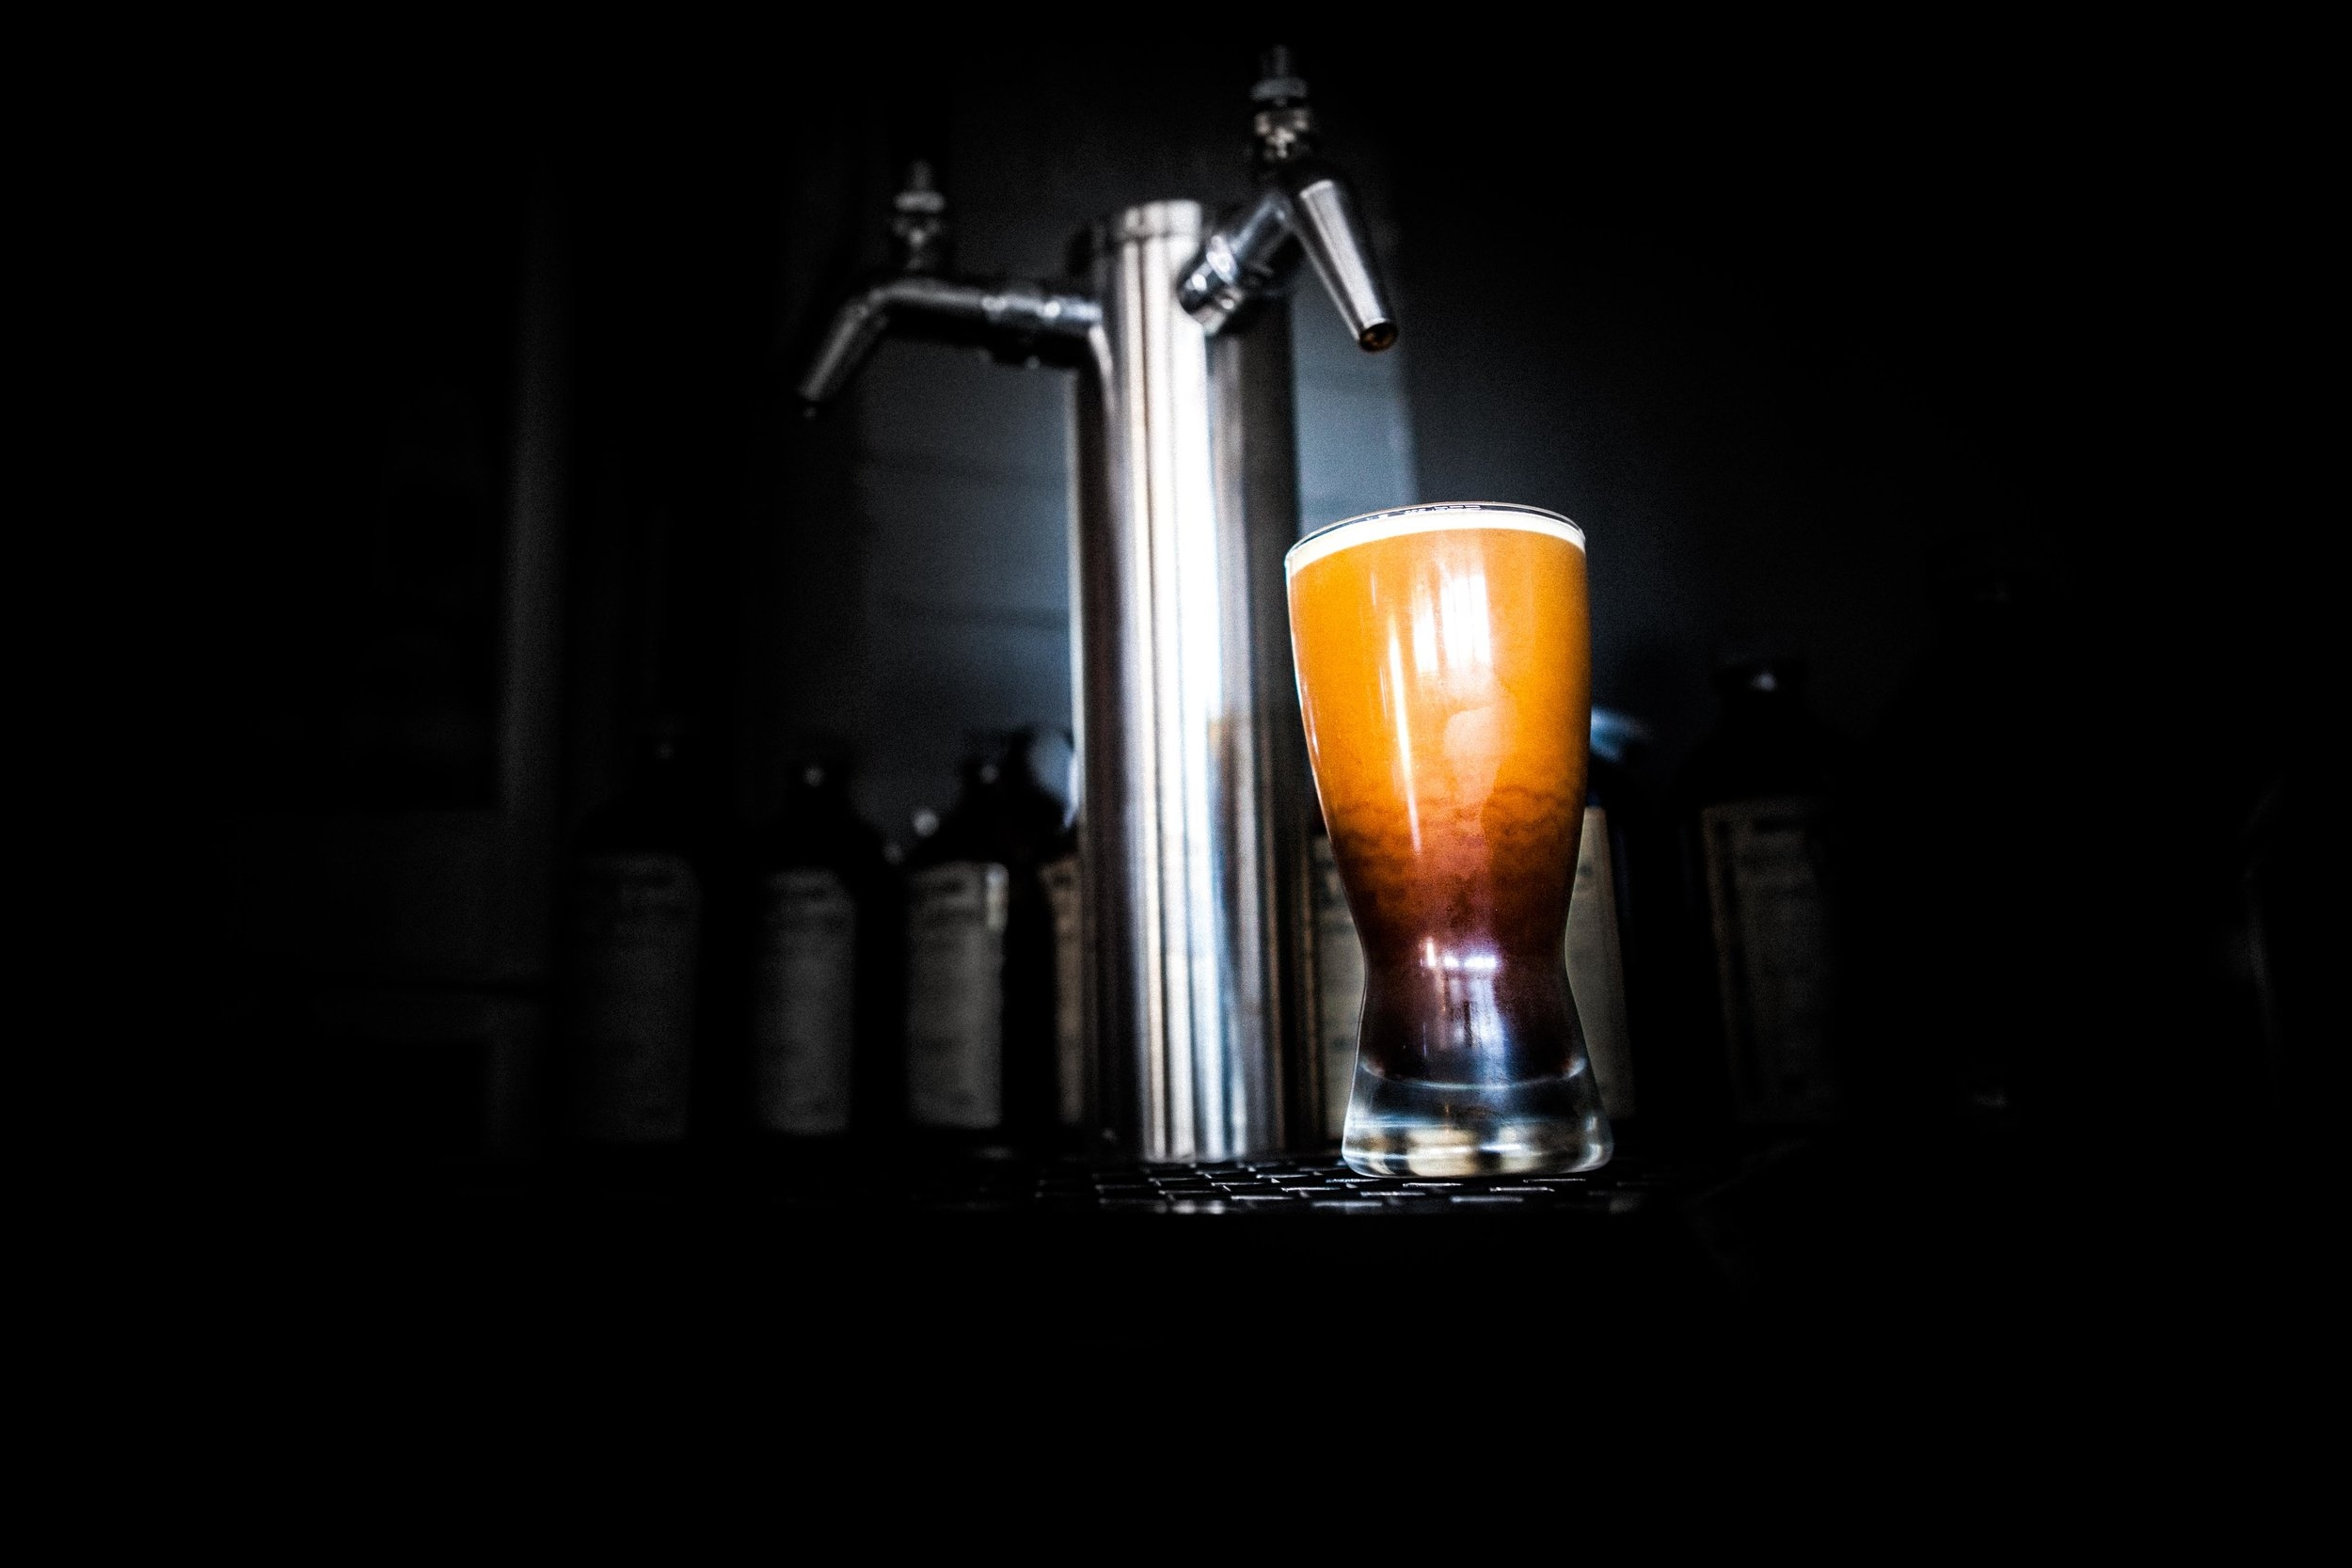 nitro infused cold brew